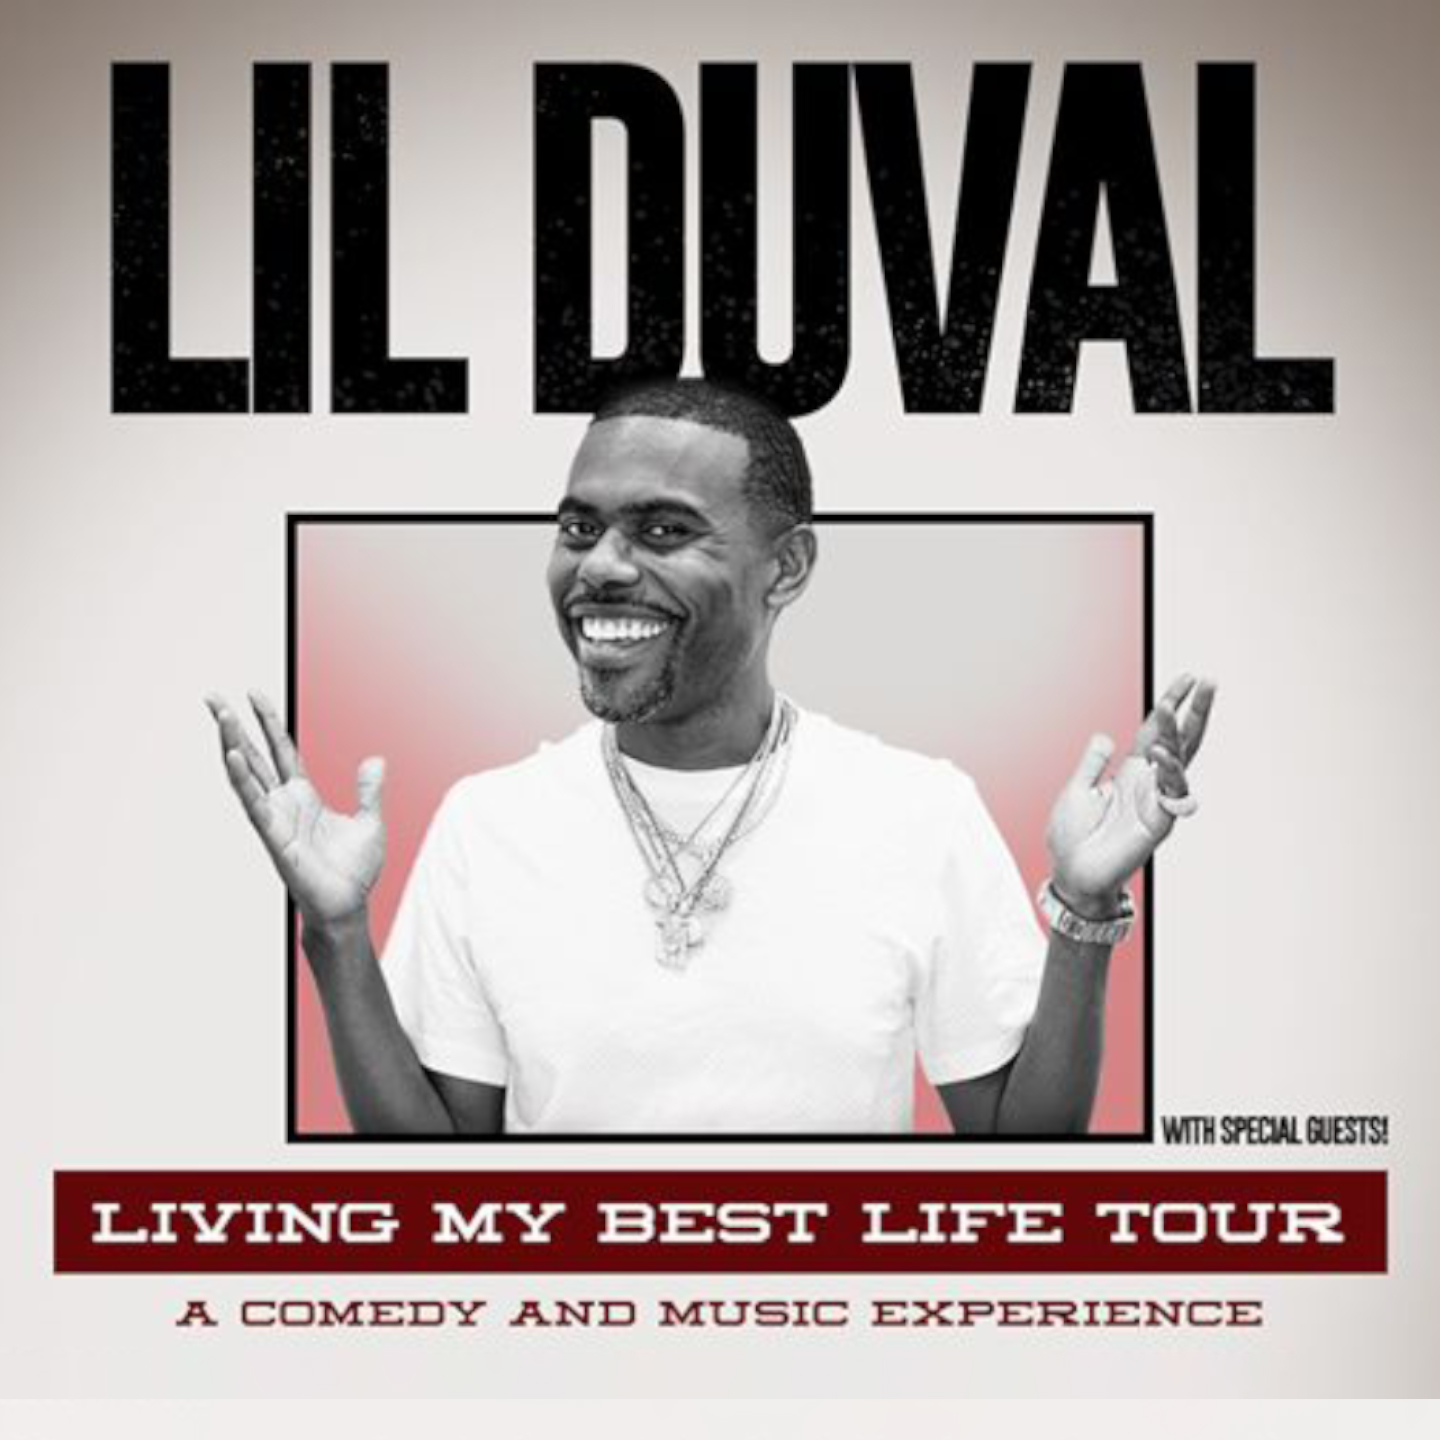 Lil Duval: Living My Best Life Tour